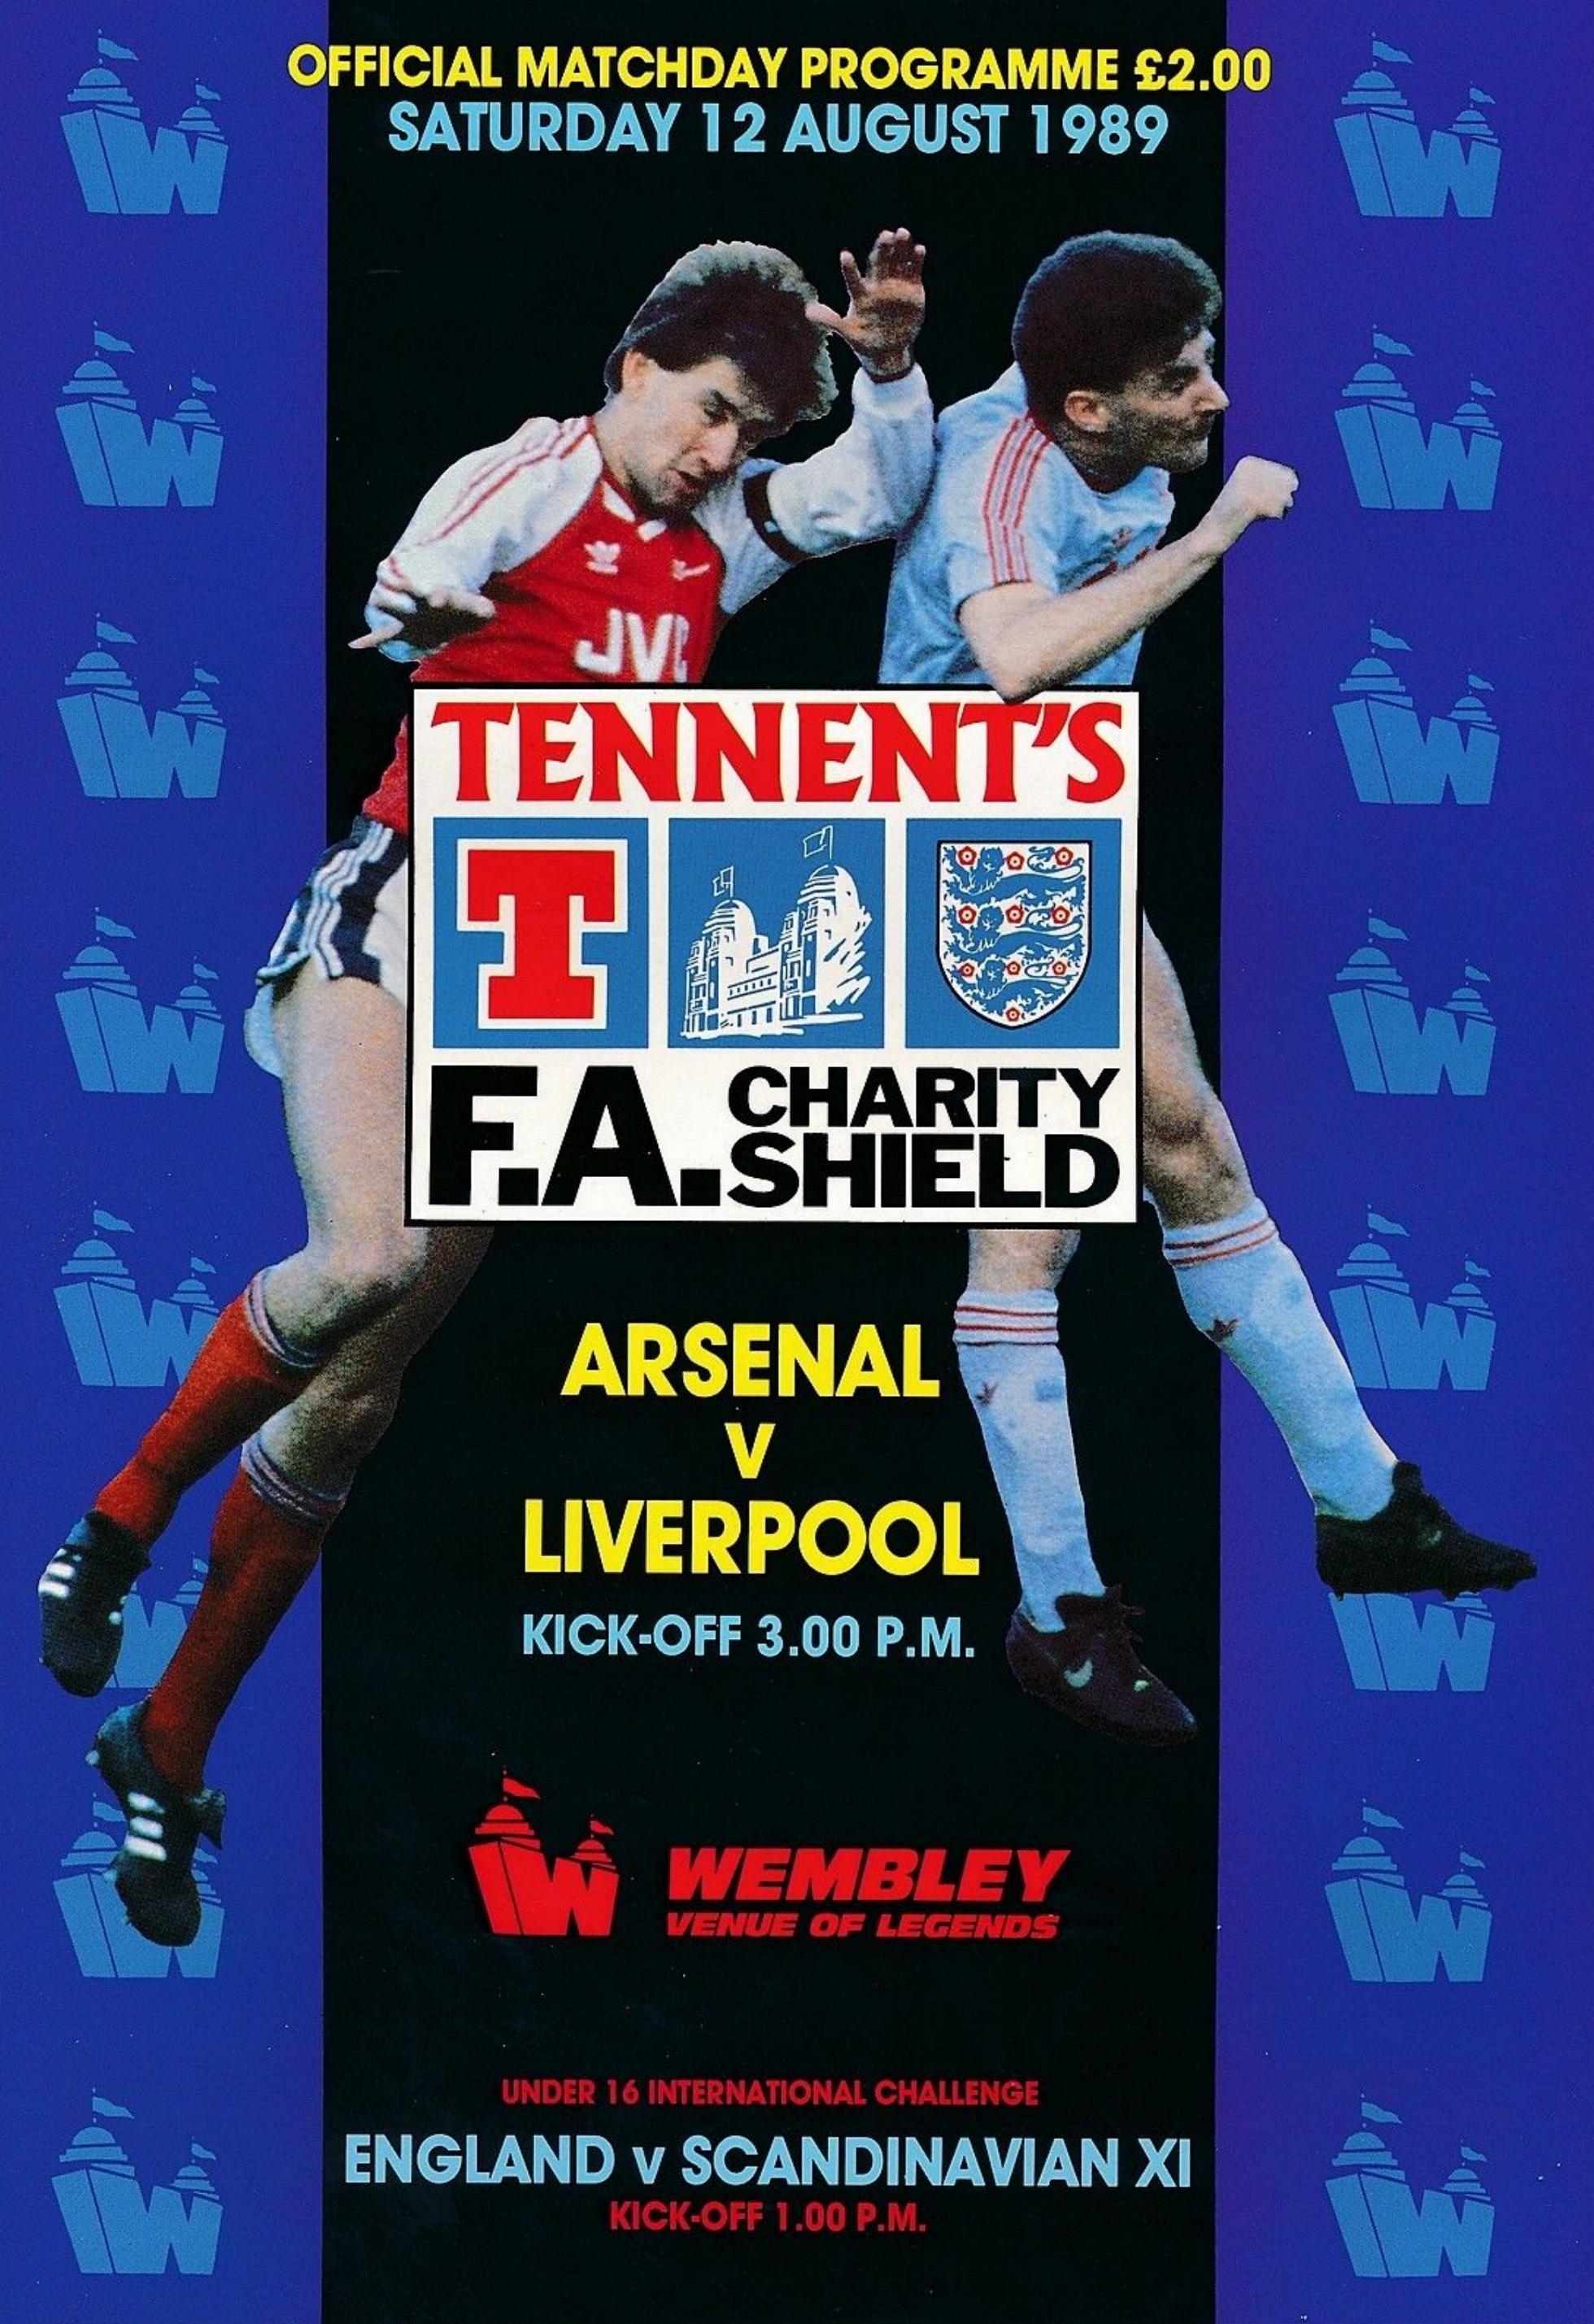 1989 CHARITY SHIELD - ARSENAL v LIVERPOOL